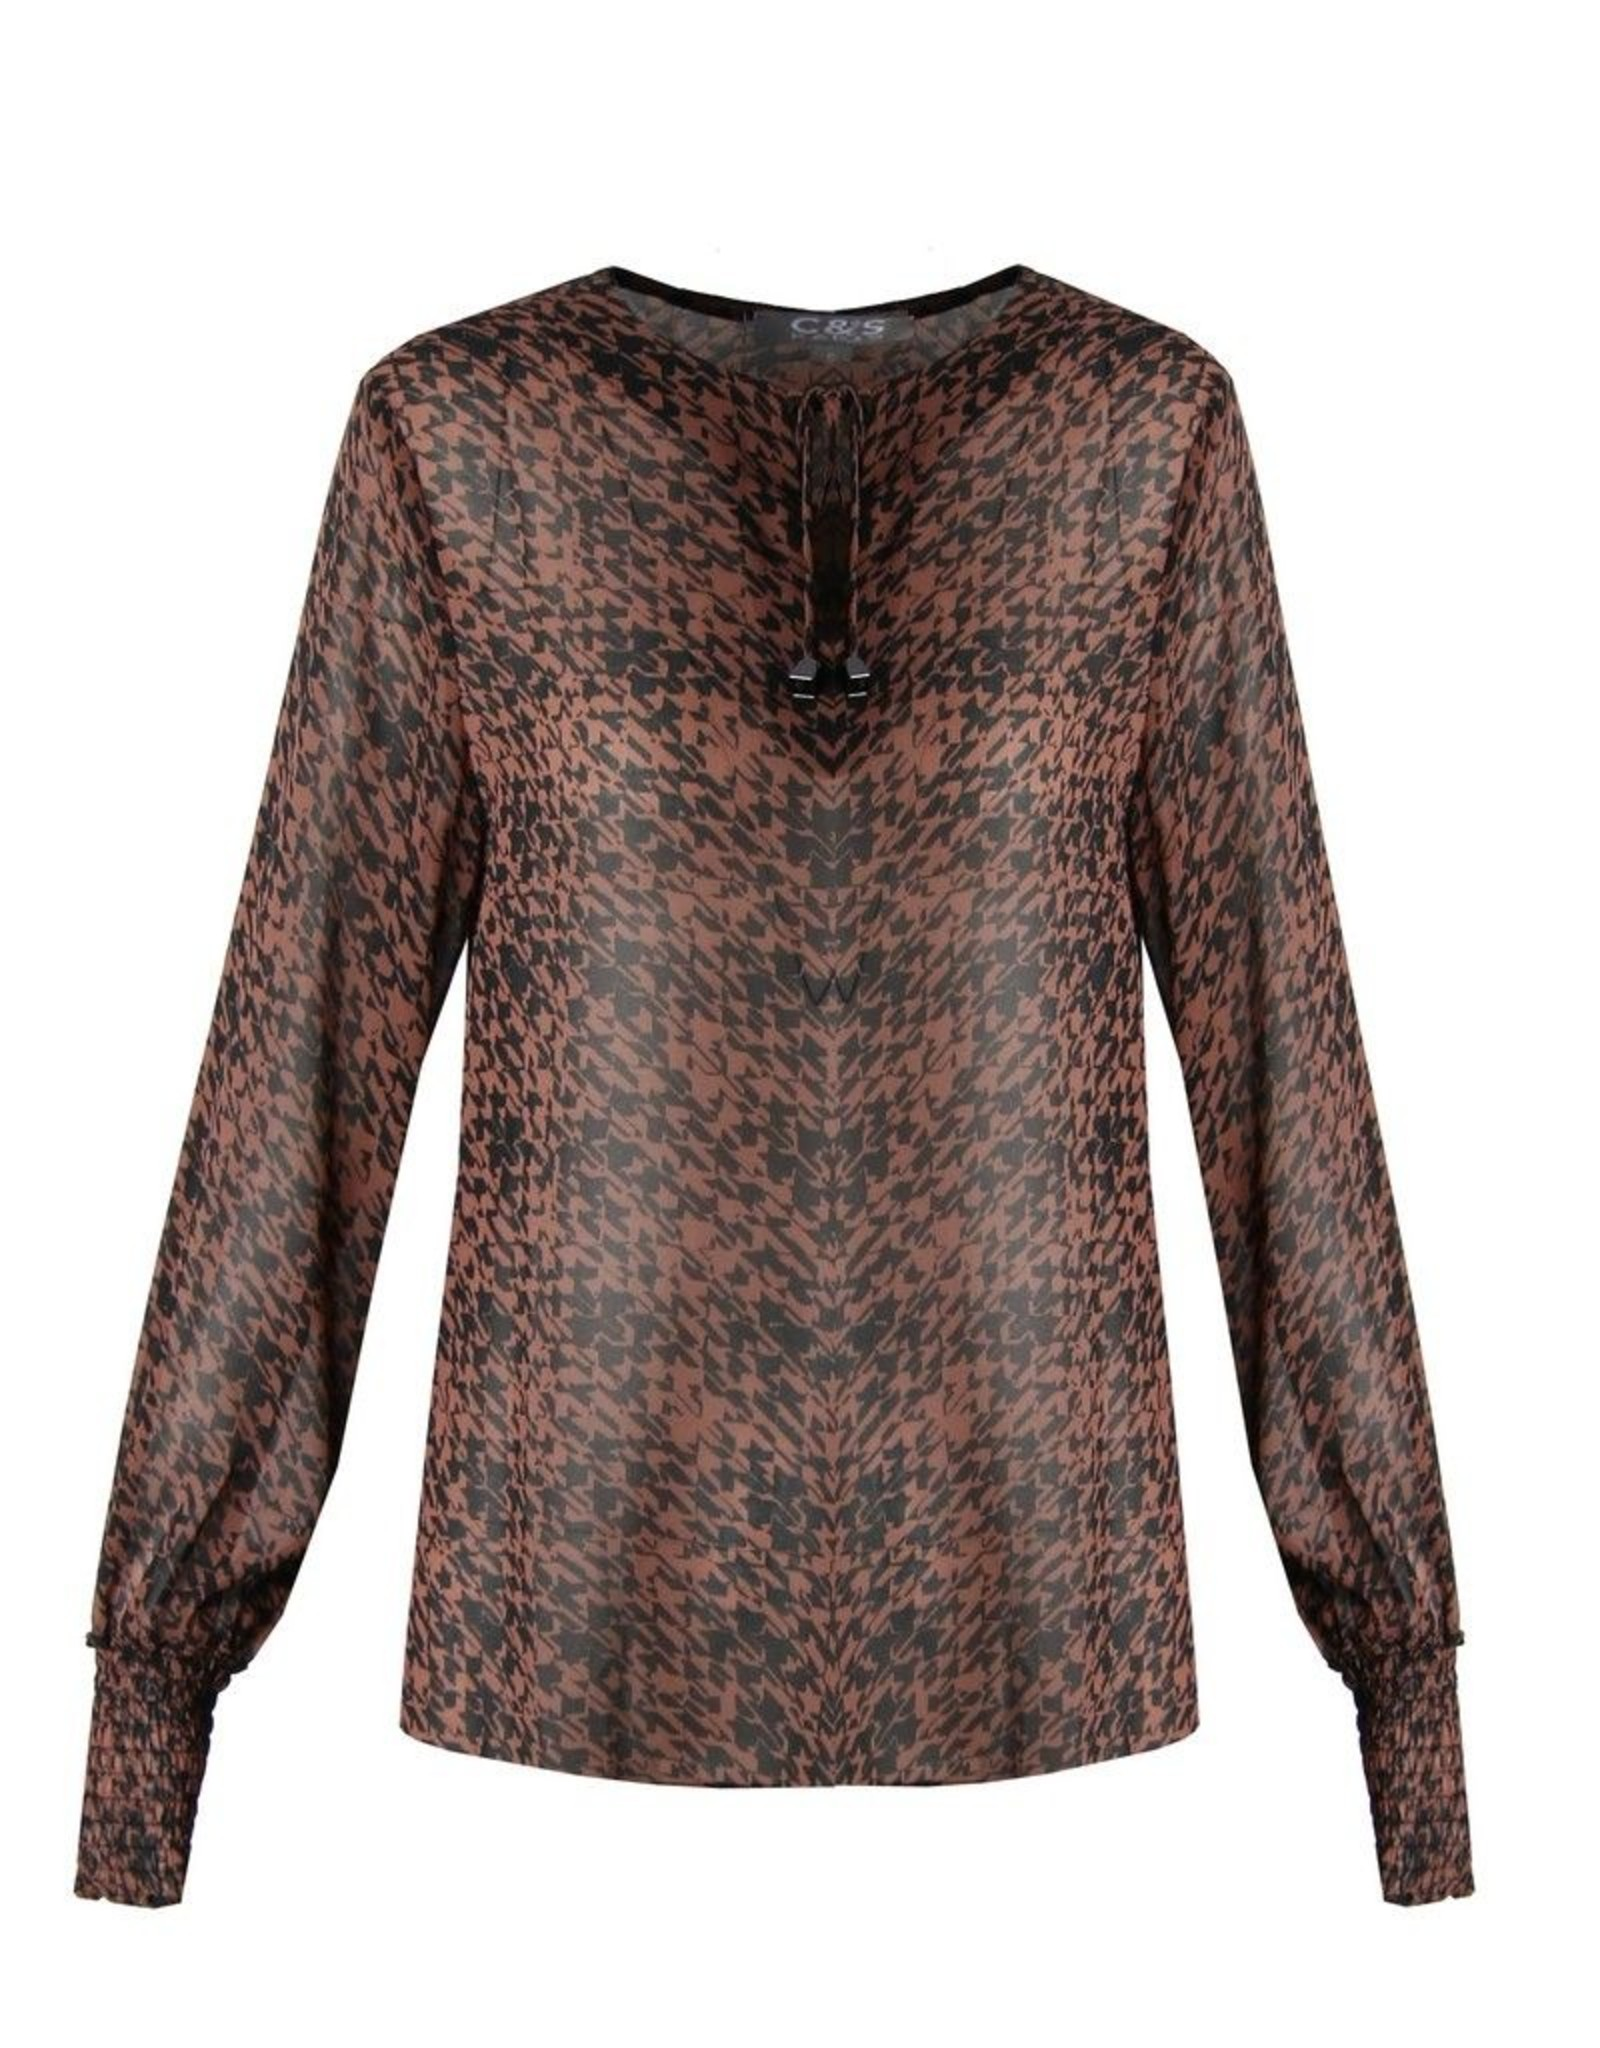 C&S Blouse Rust brown With Black